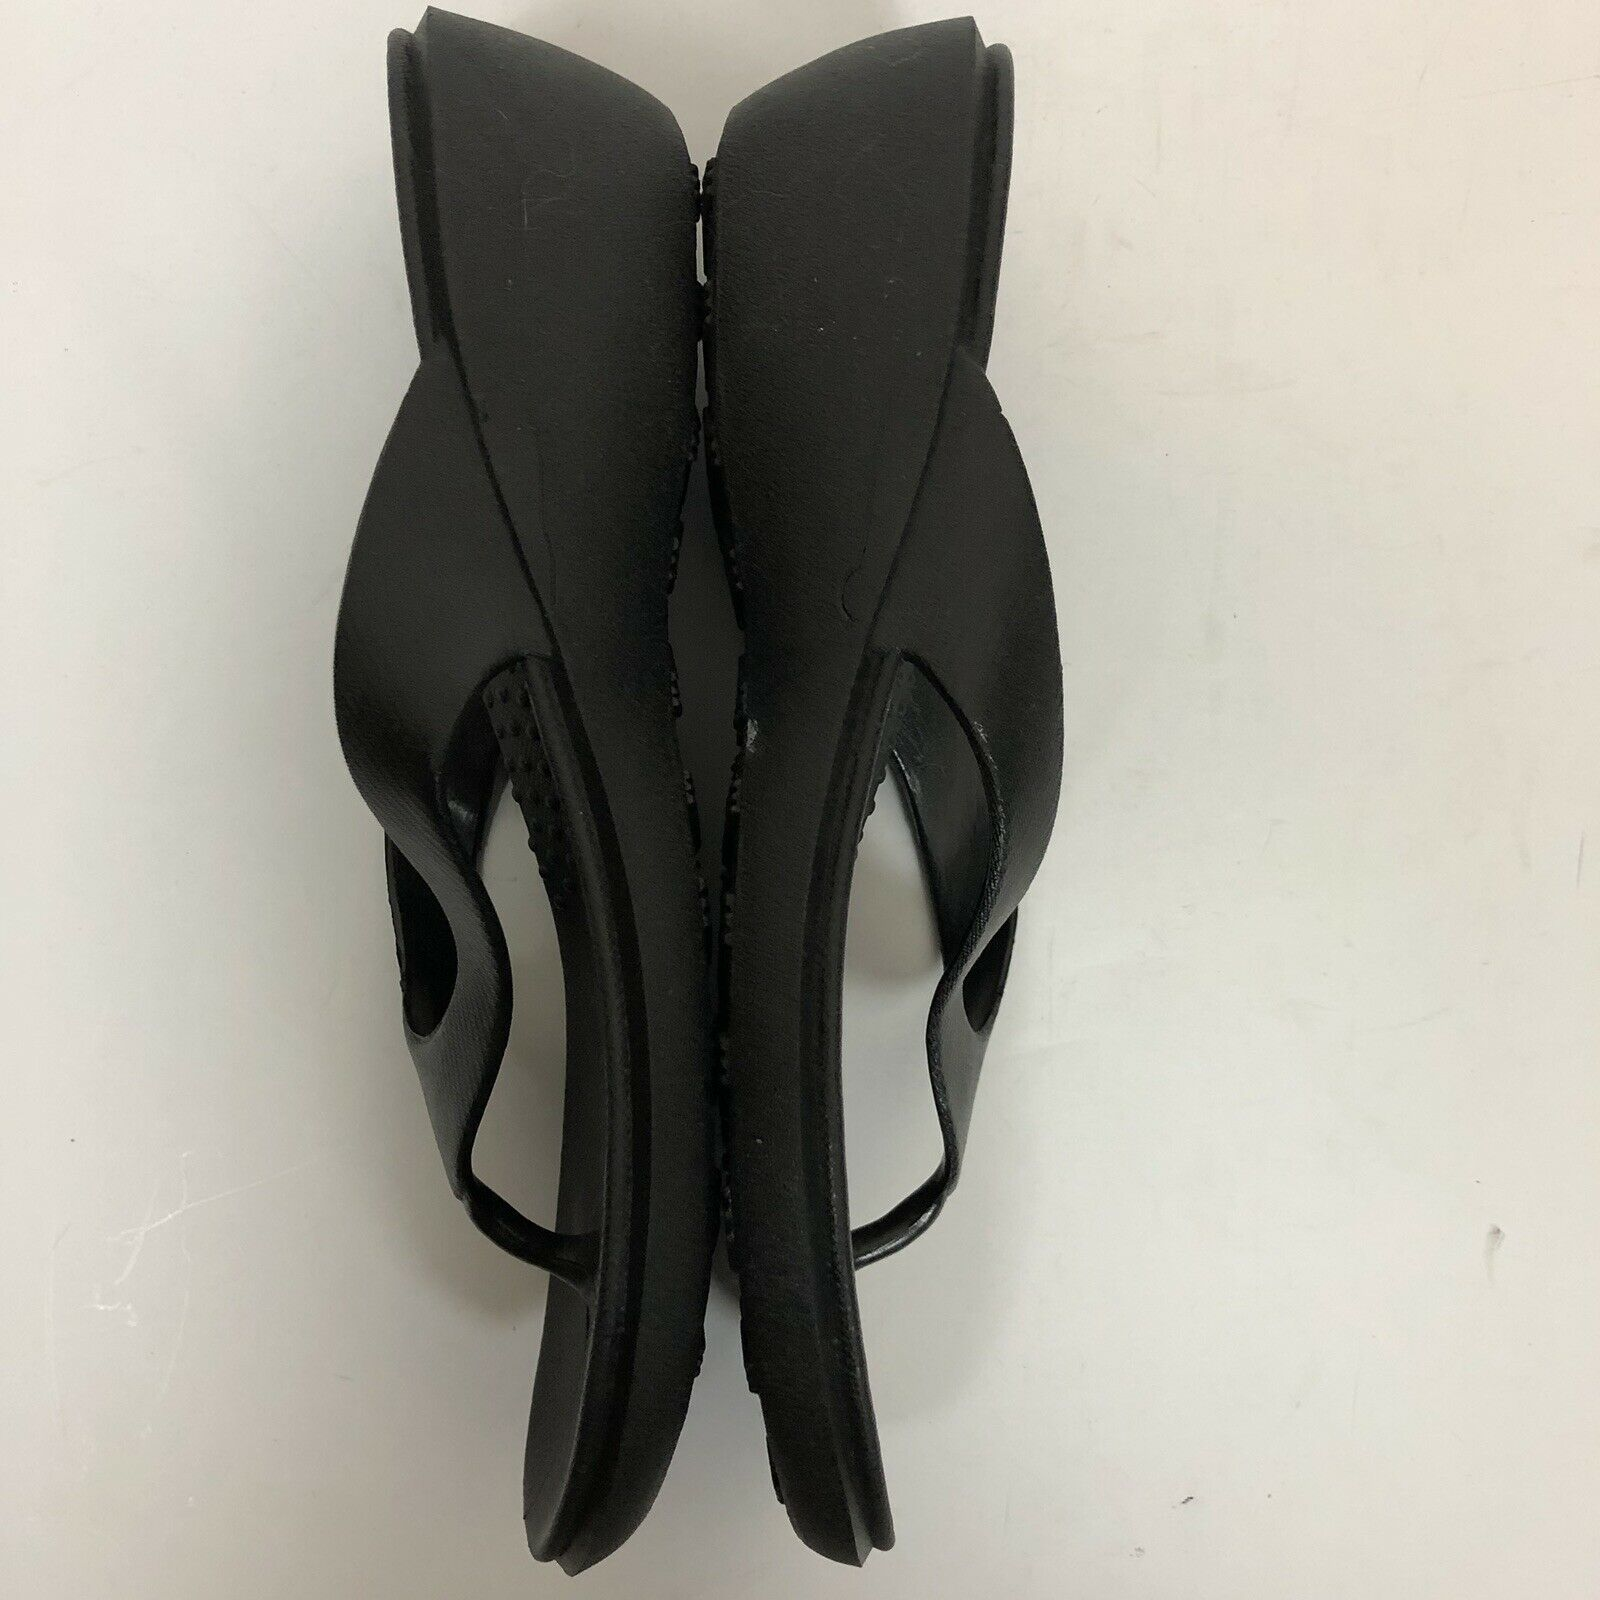 Okabashi Black Flip Flop Sandals Thong Black Wedge Women's Size ML